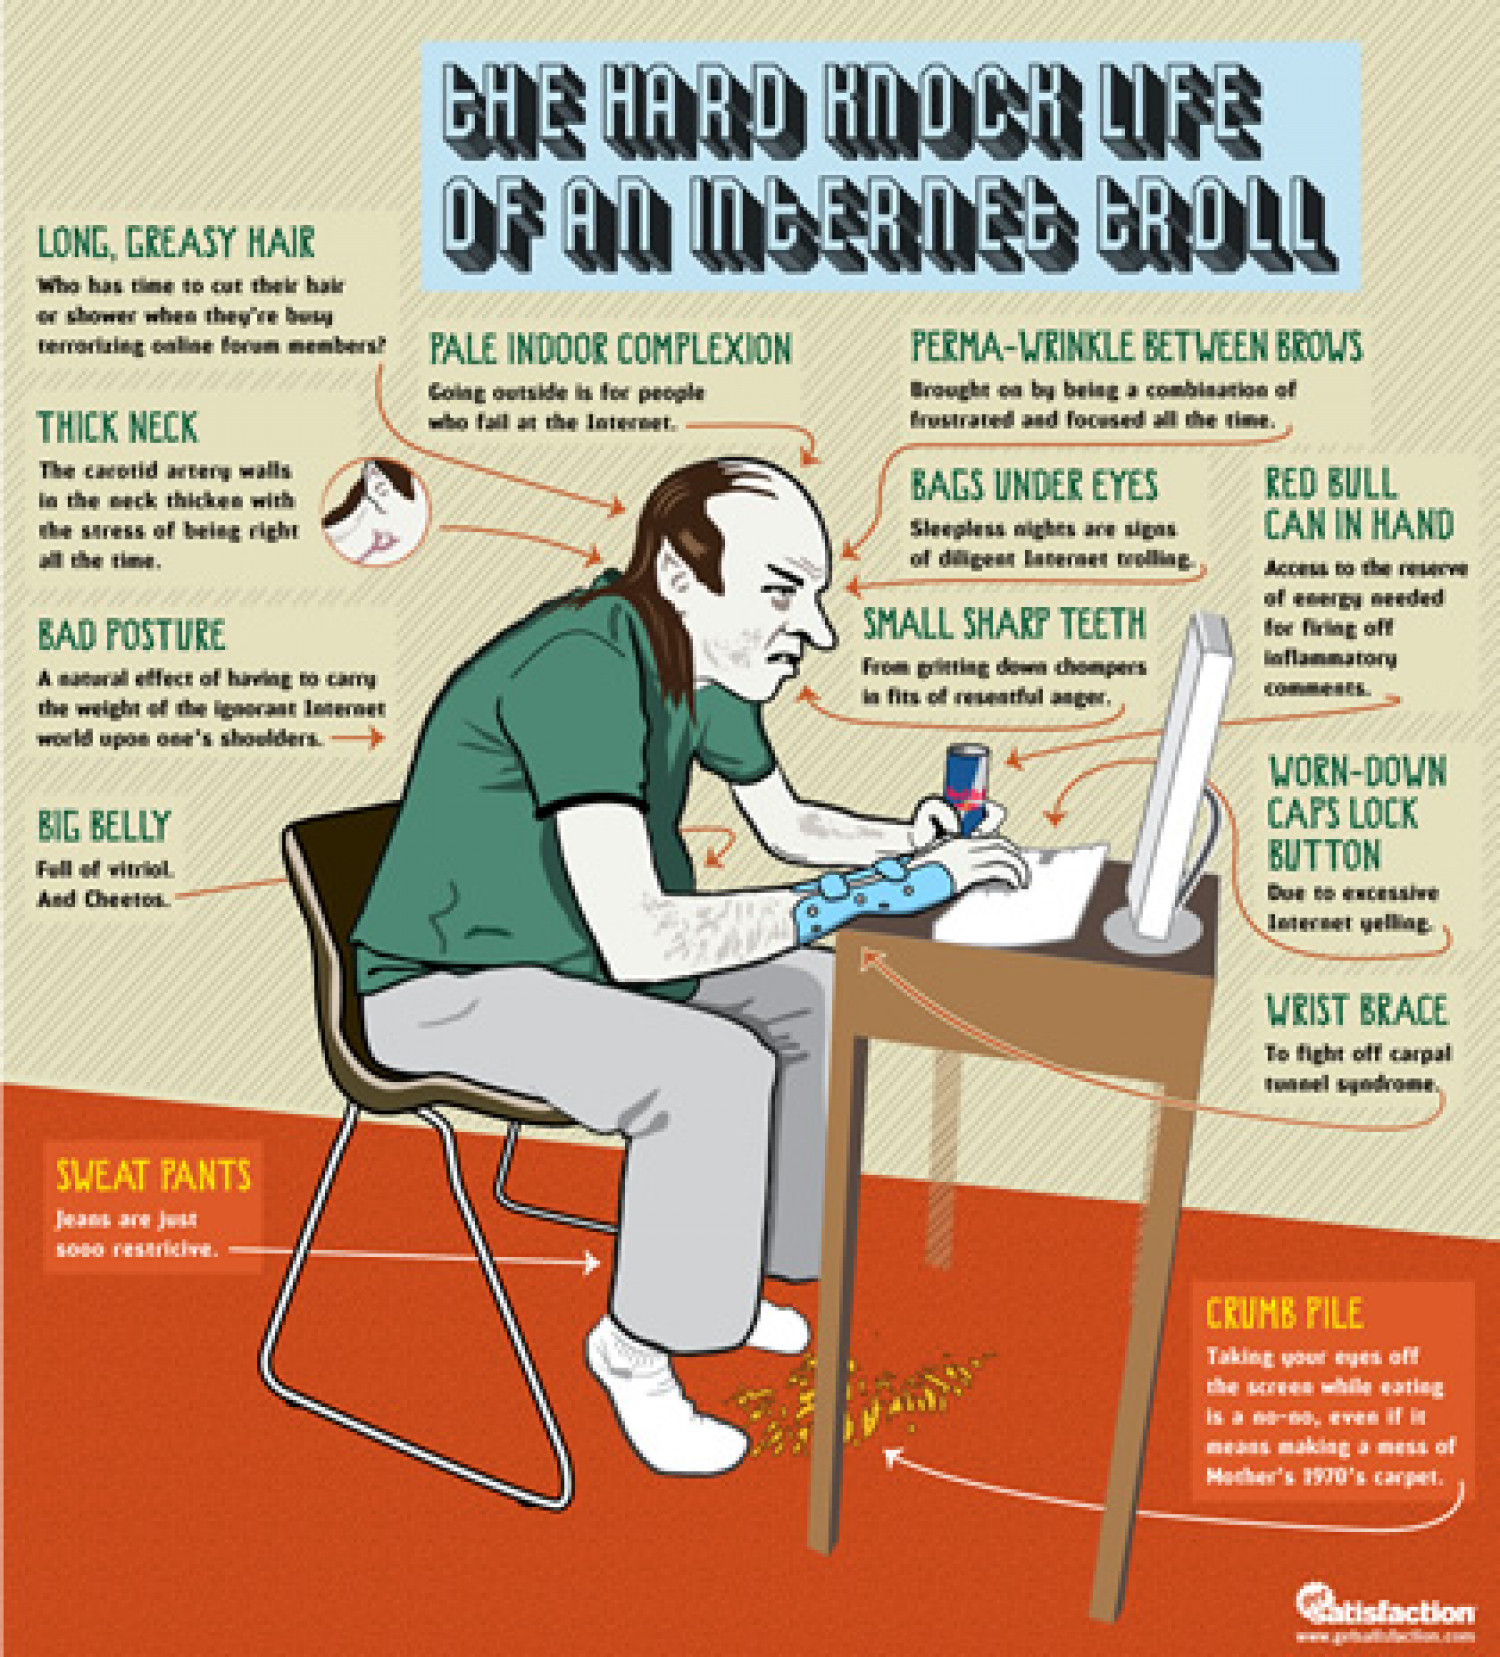 The Hard Knock Life Of An Internet Troll Infographic